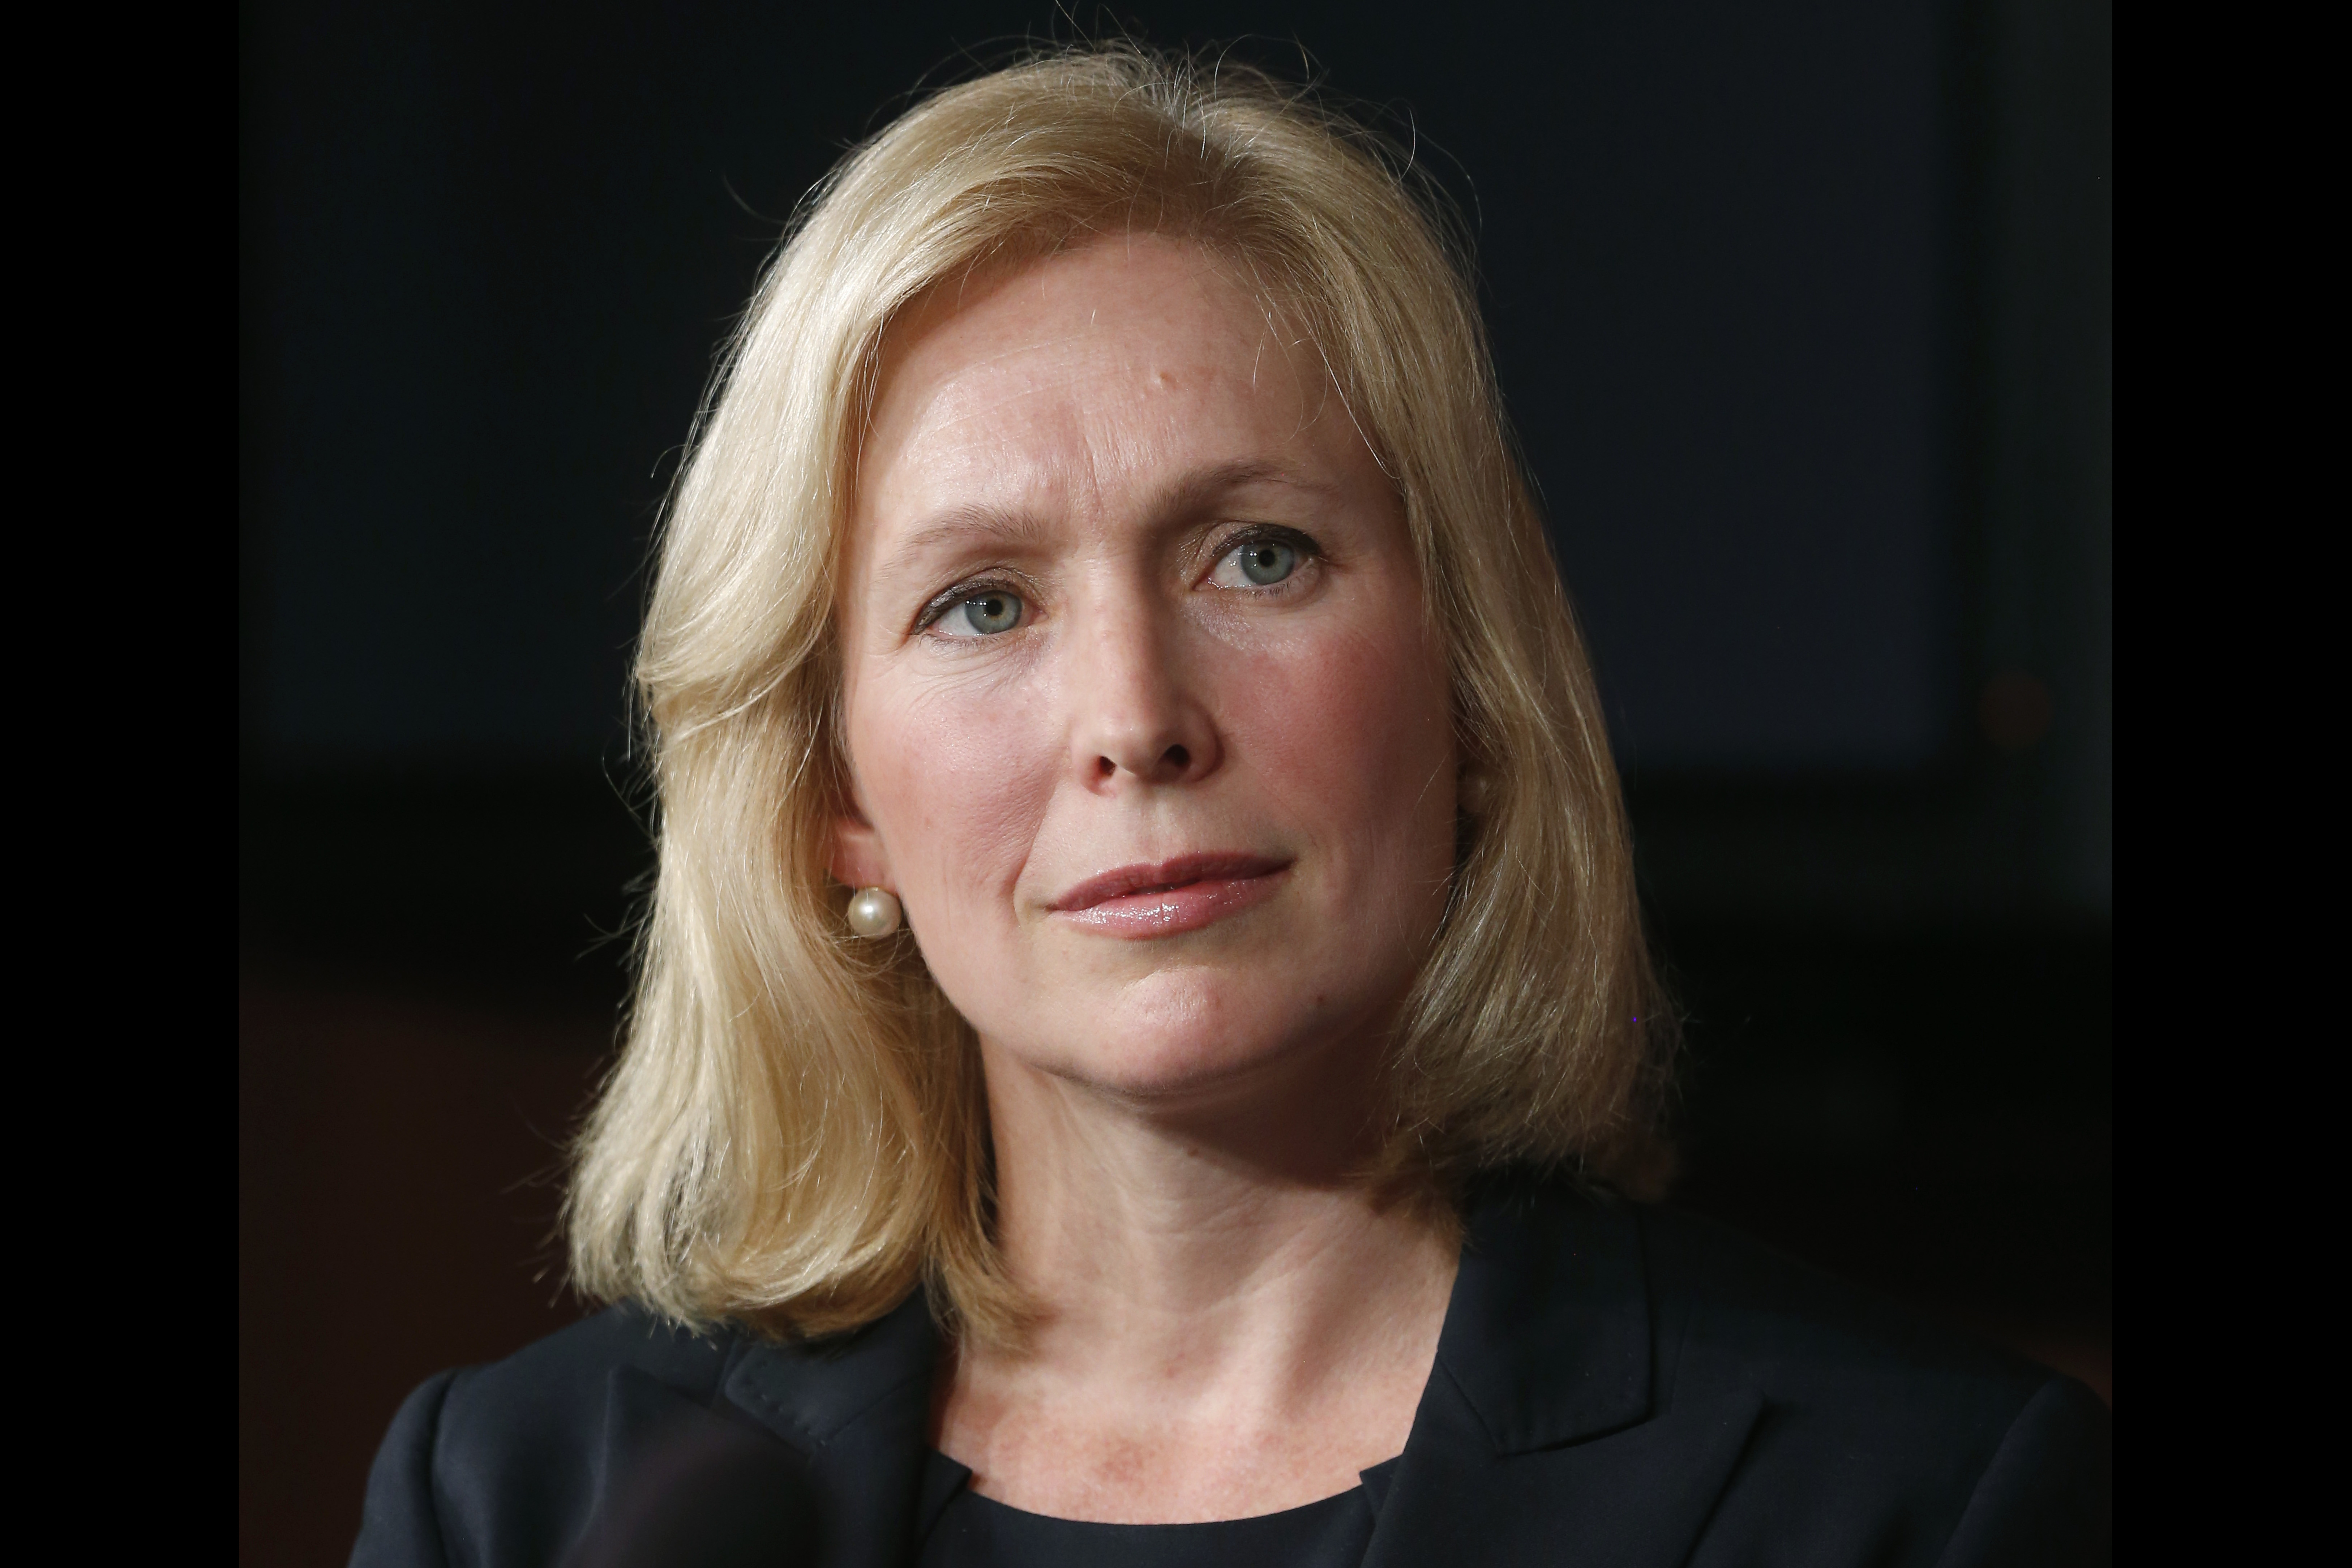 Senator Kirsten Gillibrand at a news conference about a bill regarding military sexual assault cases on Capitol Hill in Washington on July 16, 2013.